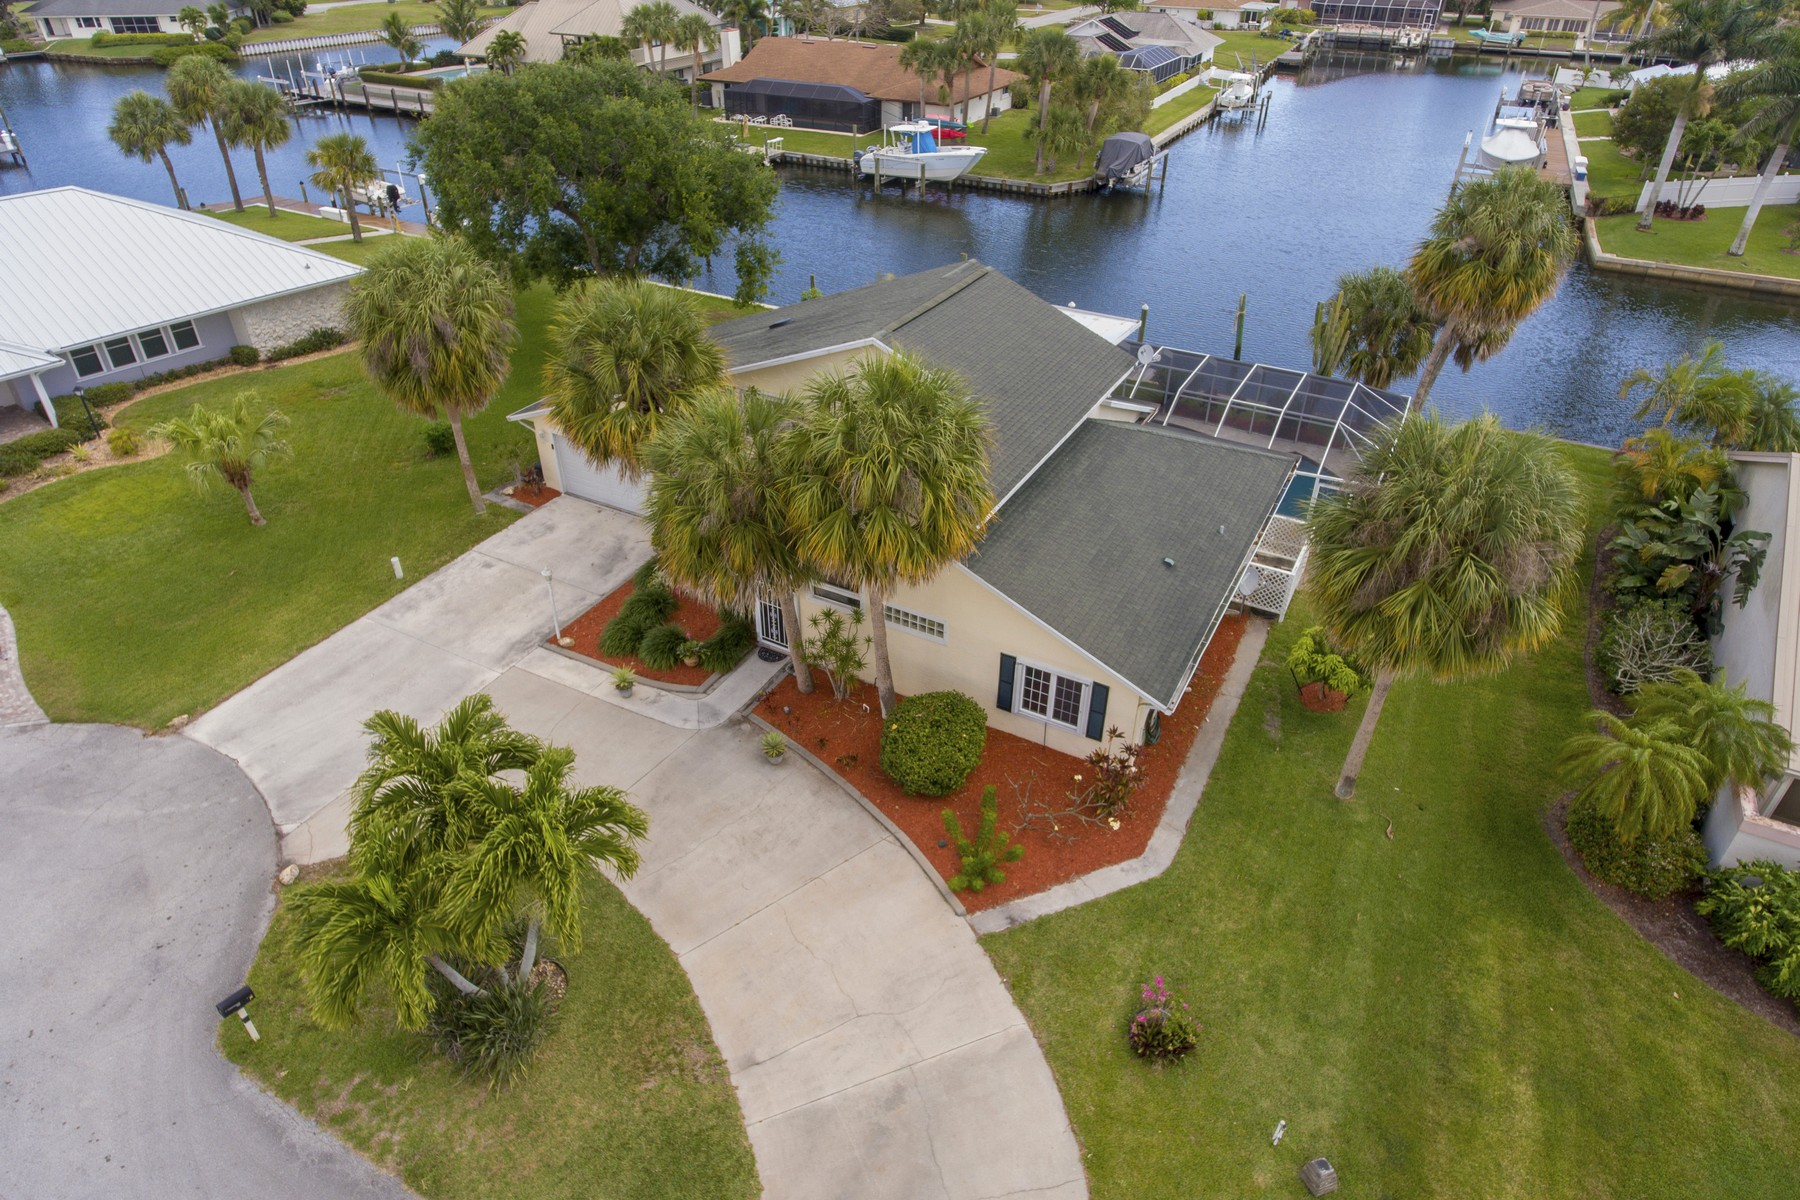 Single Family Homes for Sale at Boater's Paradise Four Bedroom Pool Home 126 Queen Bess Court Fort Pierce, Florida 34949 United States